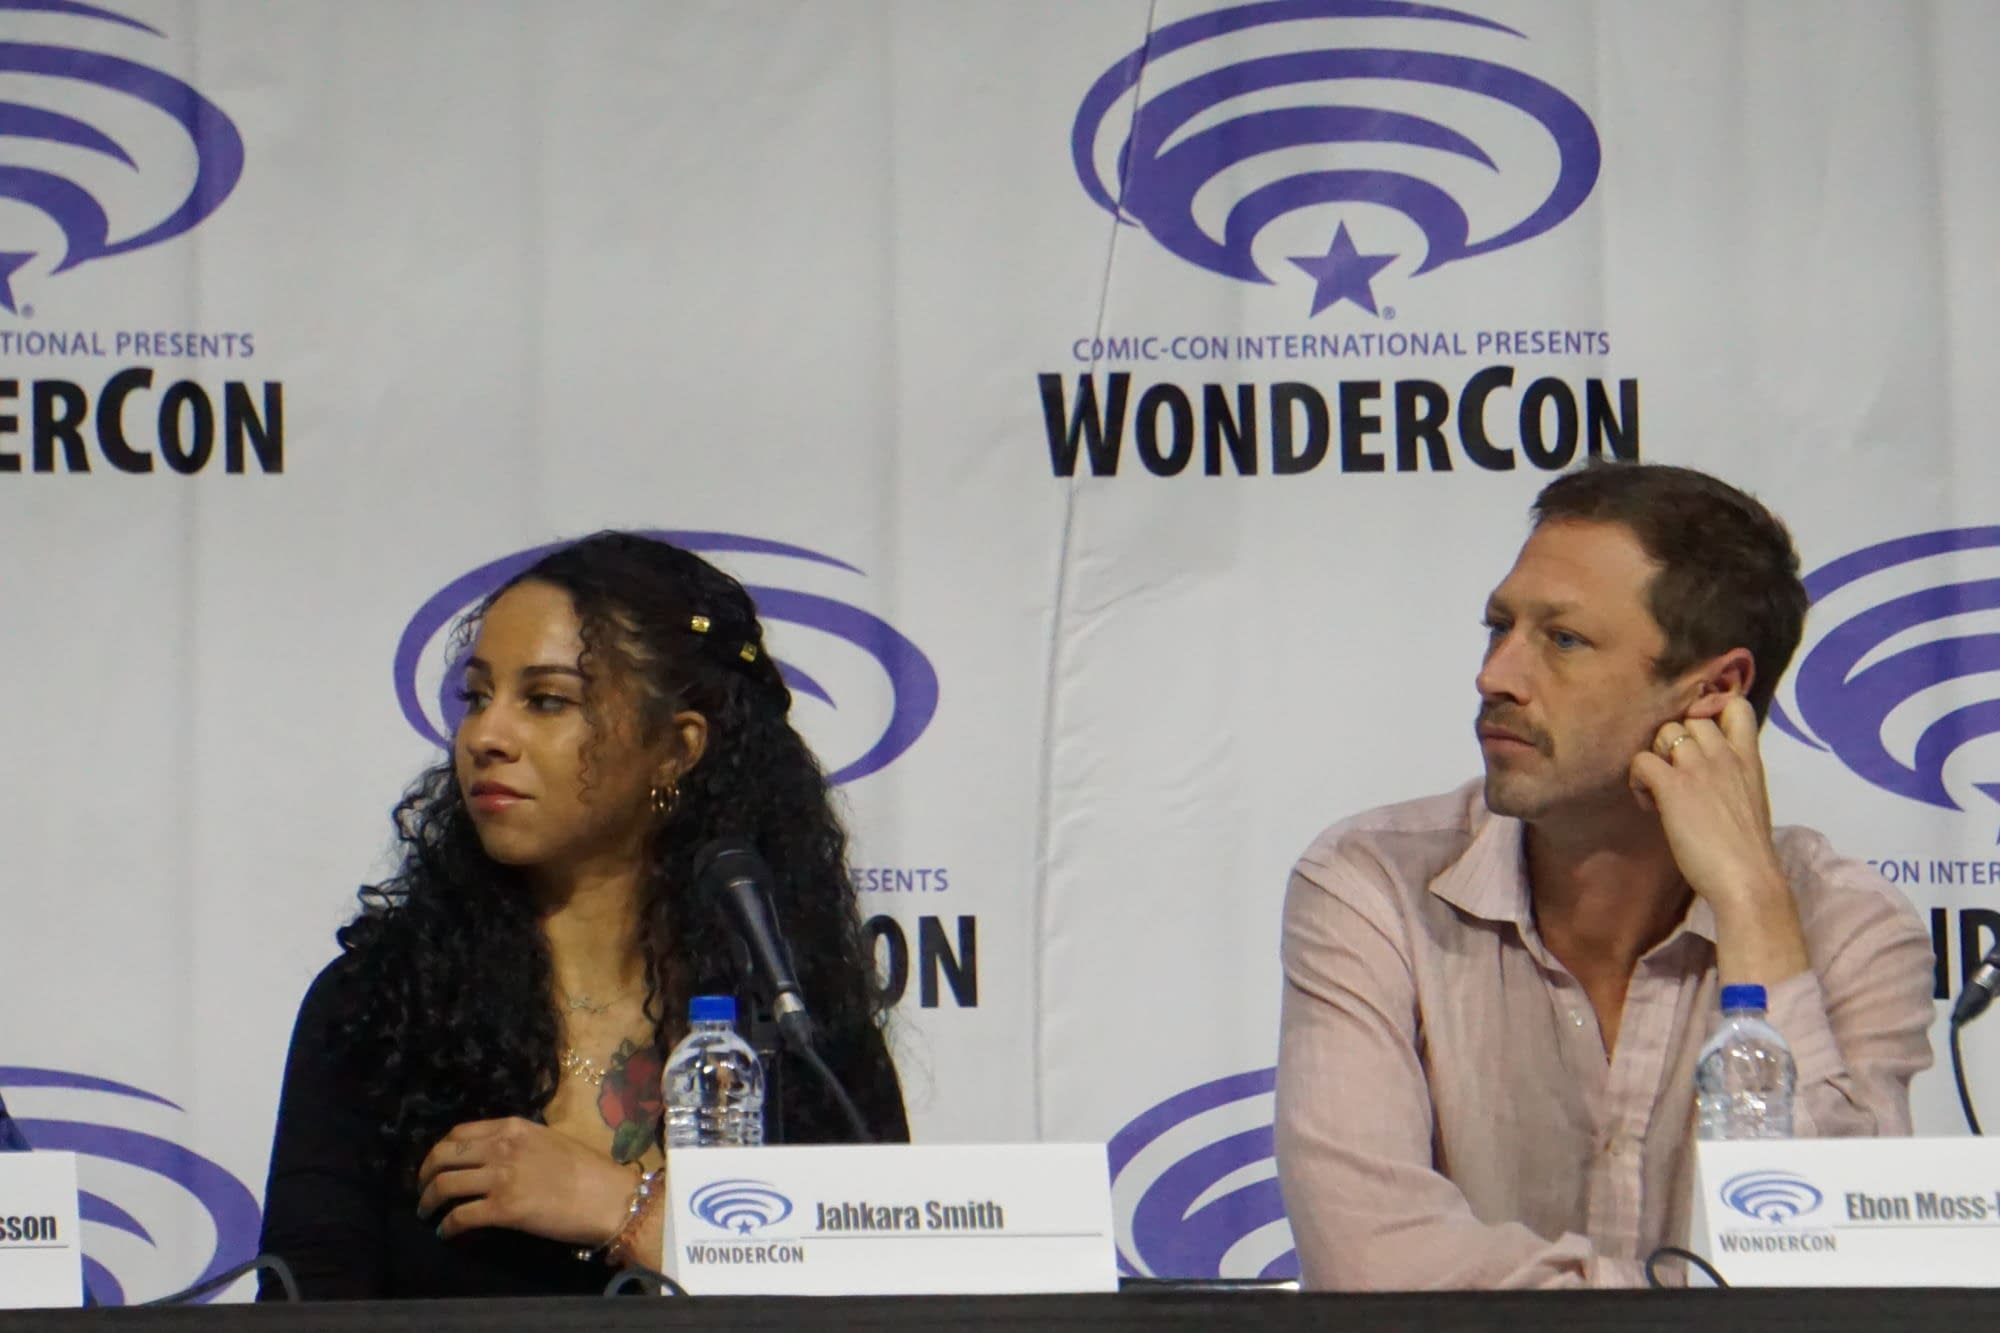 NOS4A2 Wondercon Screening and Panel